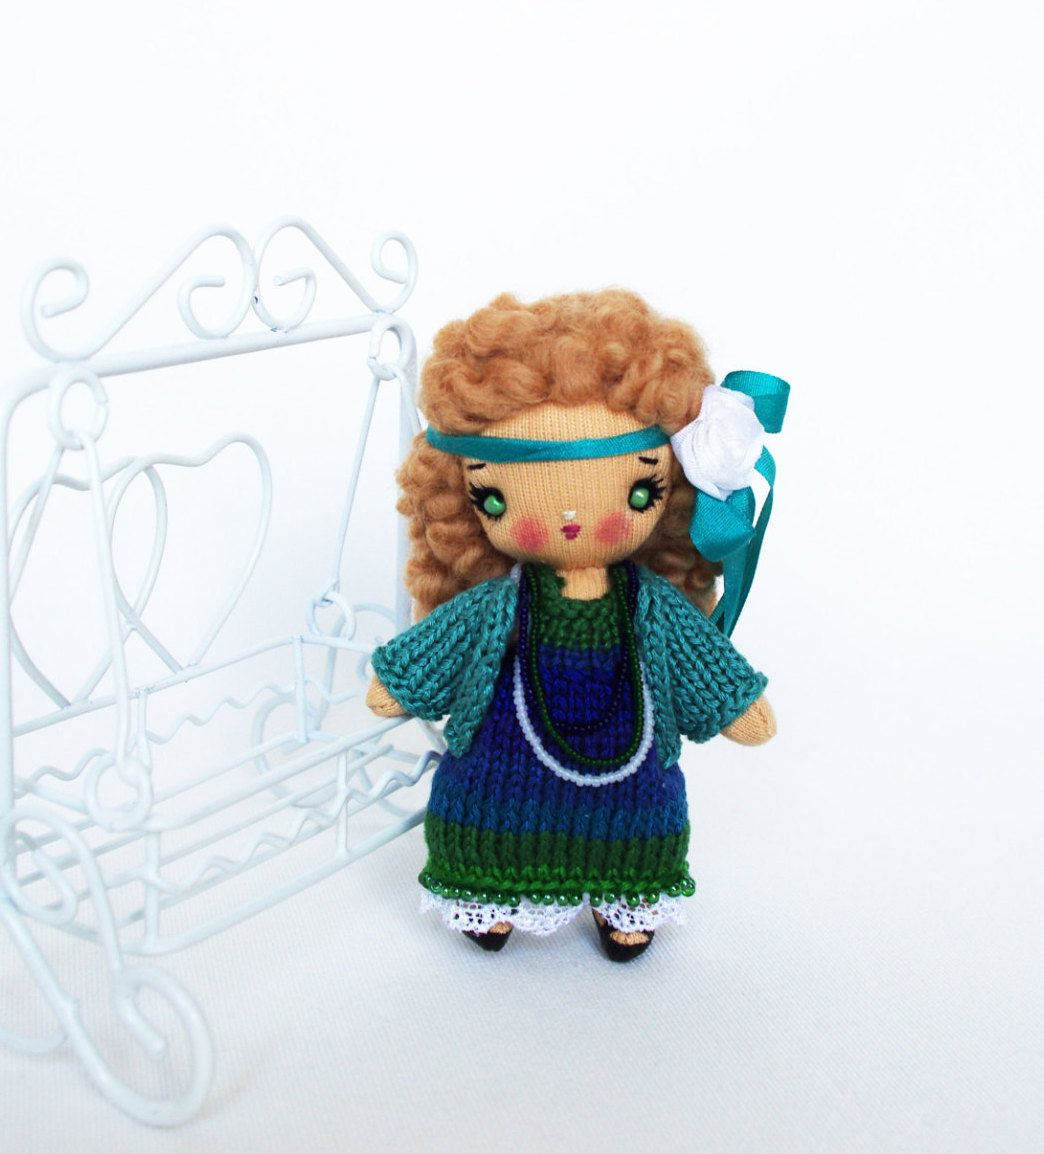 Cloth tiny doll in peacock color dress Handmade cute gift 4 inch - pinned by pin4etsy.com